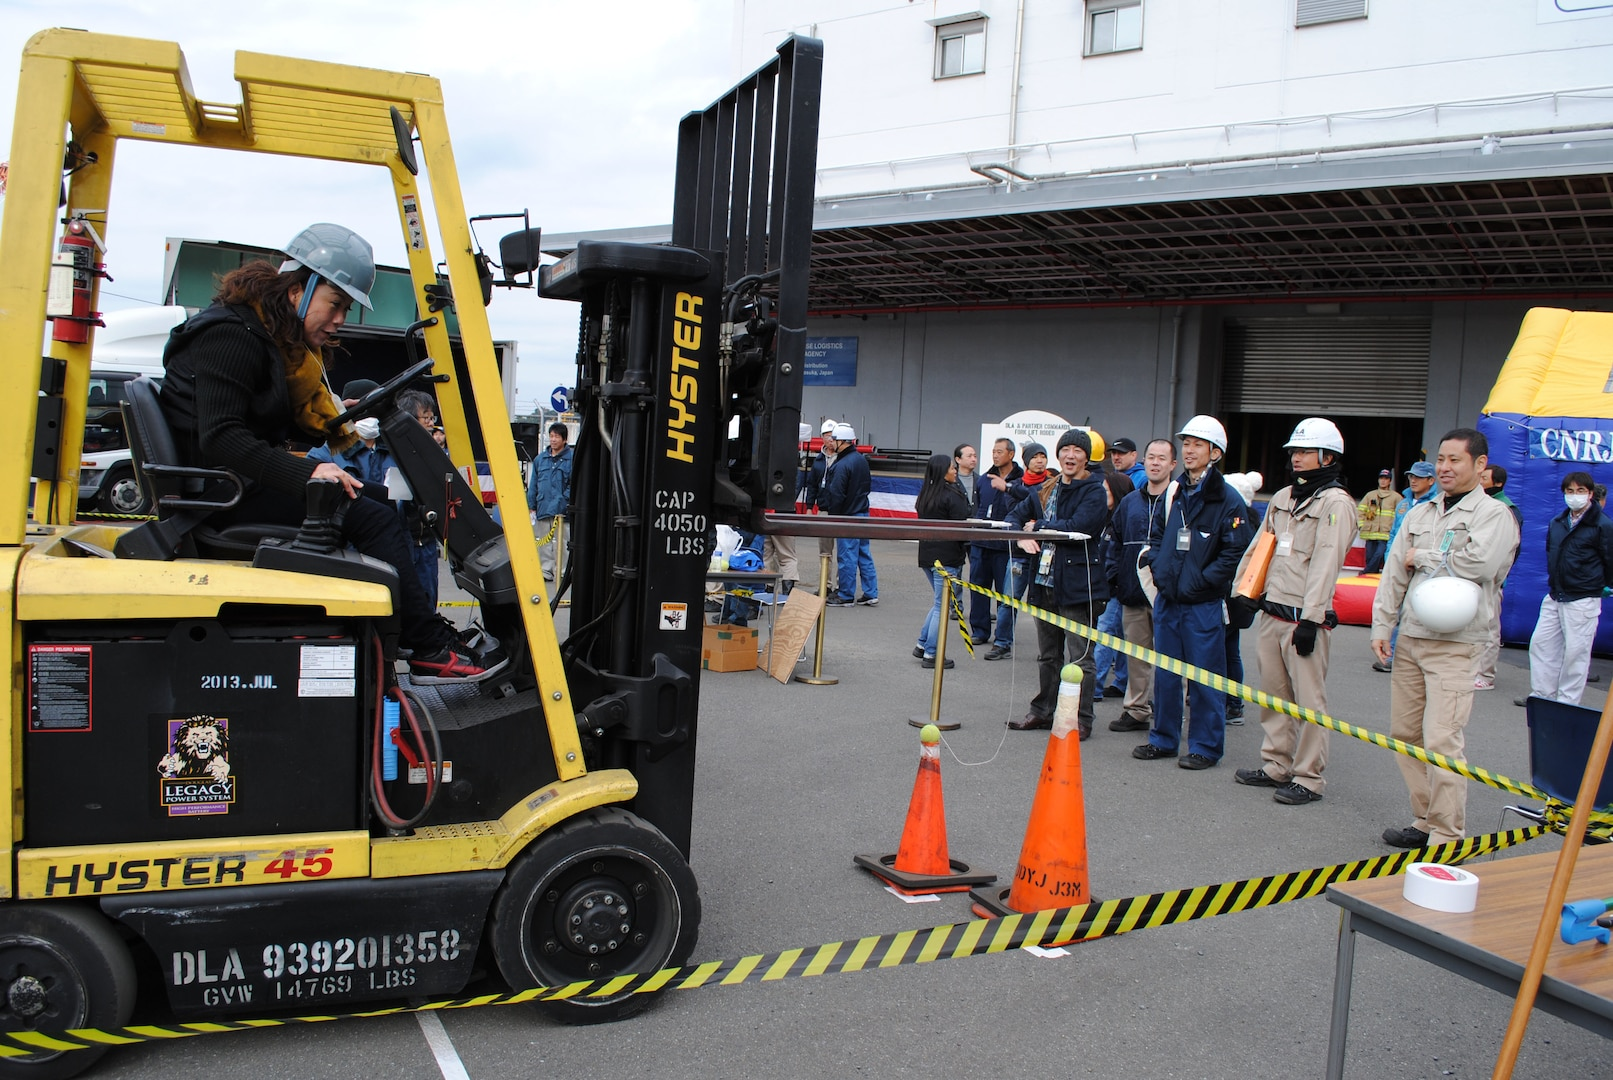 An employee works to land a tennis ball on a traffic cone, demonstrating precise equipment handling, during one of the events at the DLA Distribution Yokosuka, Japan, Forklift Rodeo.